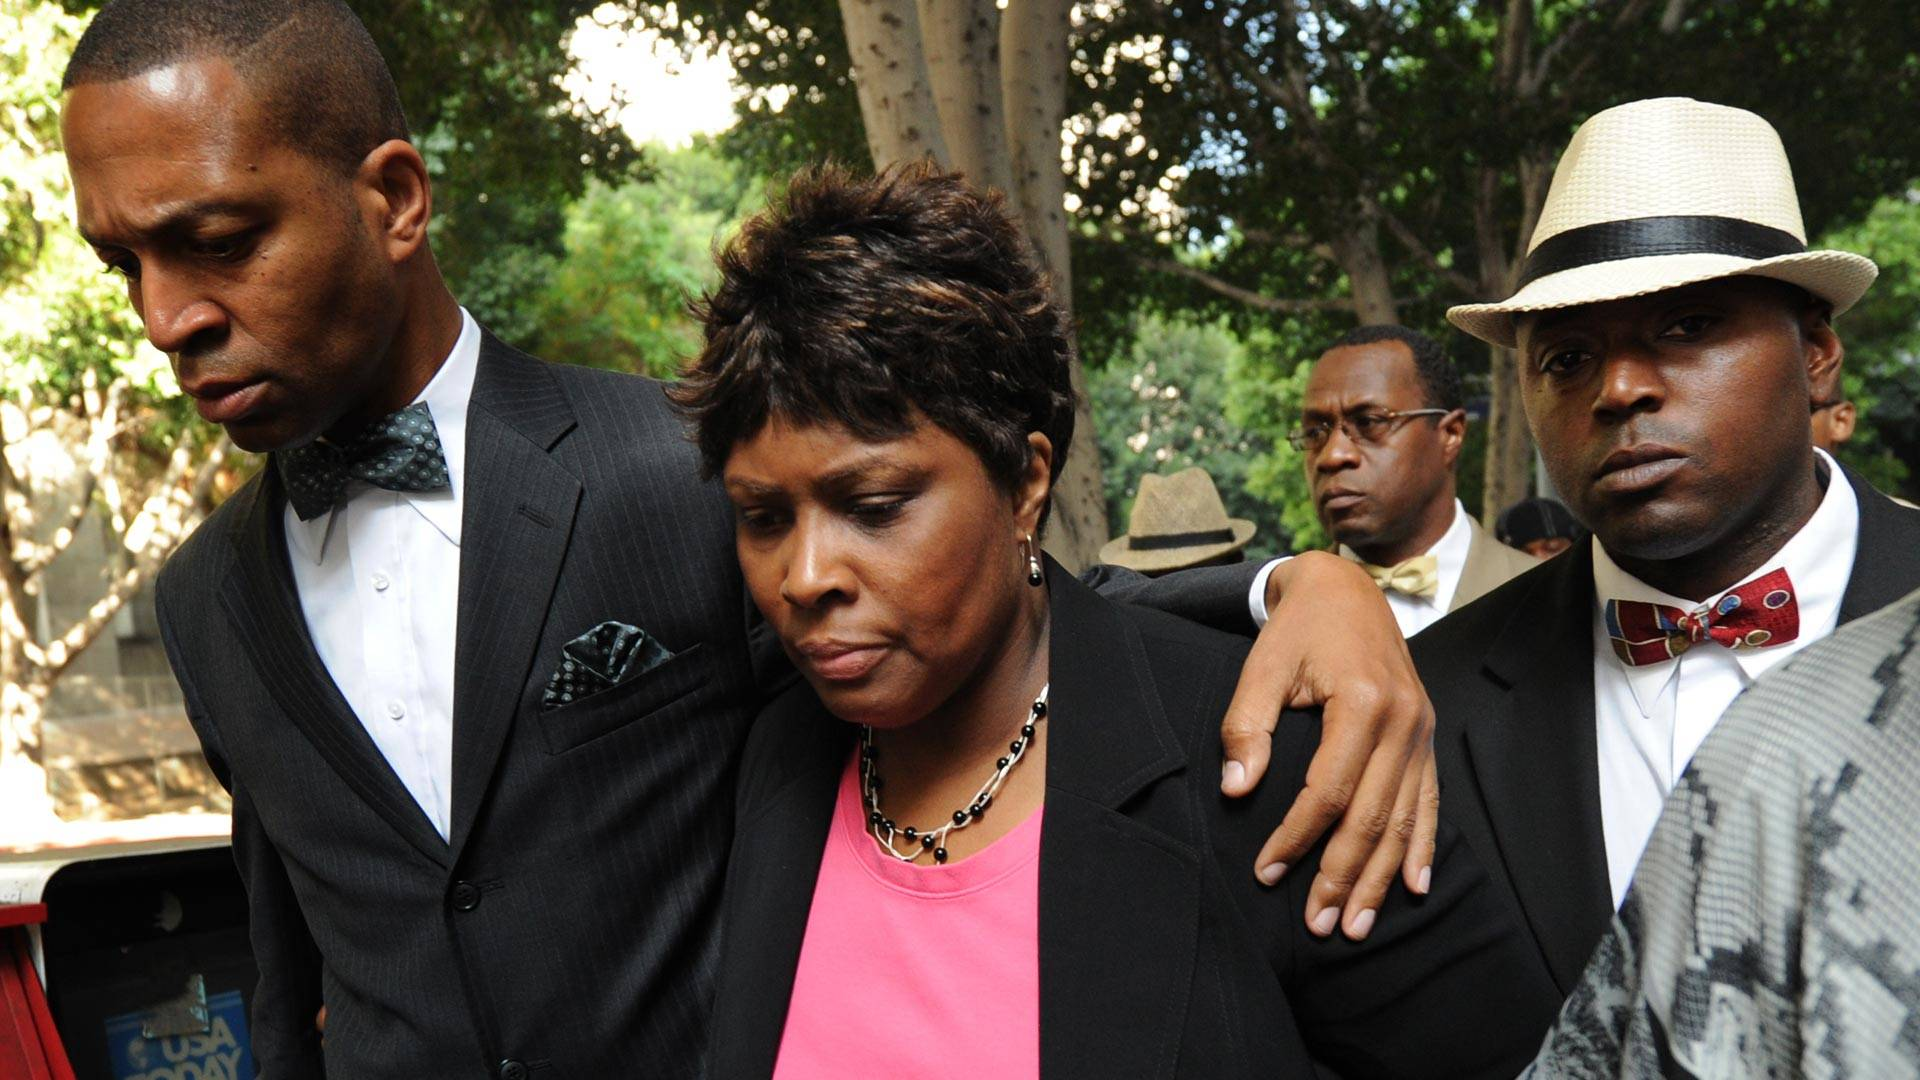 Wanda Johnson (center), the mother of Oscar J. Grant III, walks with supporters as they leave the Los Angeles Superior Court after the involuntary manslaughter verdict against former Bay Area Rapid Transit (BART) officer Johannes Mehserle, in Los Angeles on July 8, 2010. MARK RALSTON/AFP/Getty Images